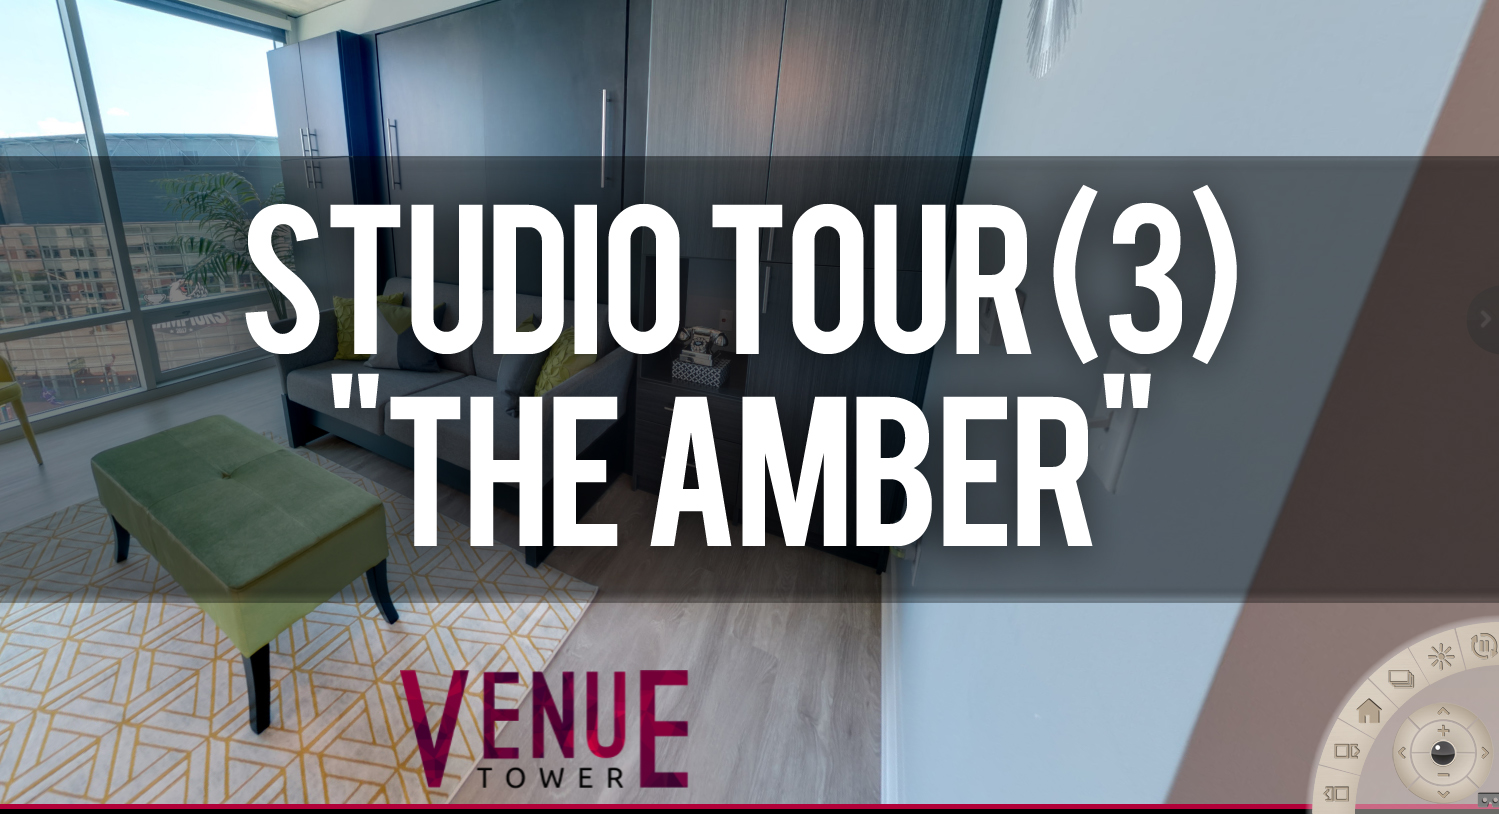 Virtual Tour Venue Tower Apartments Studio Floorplan The Amber